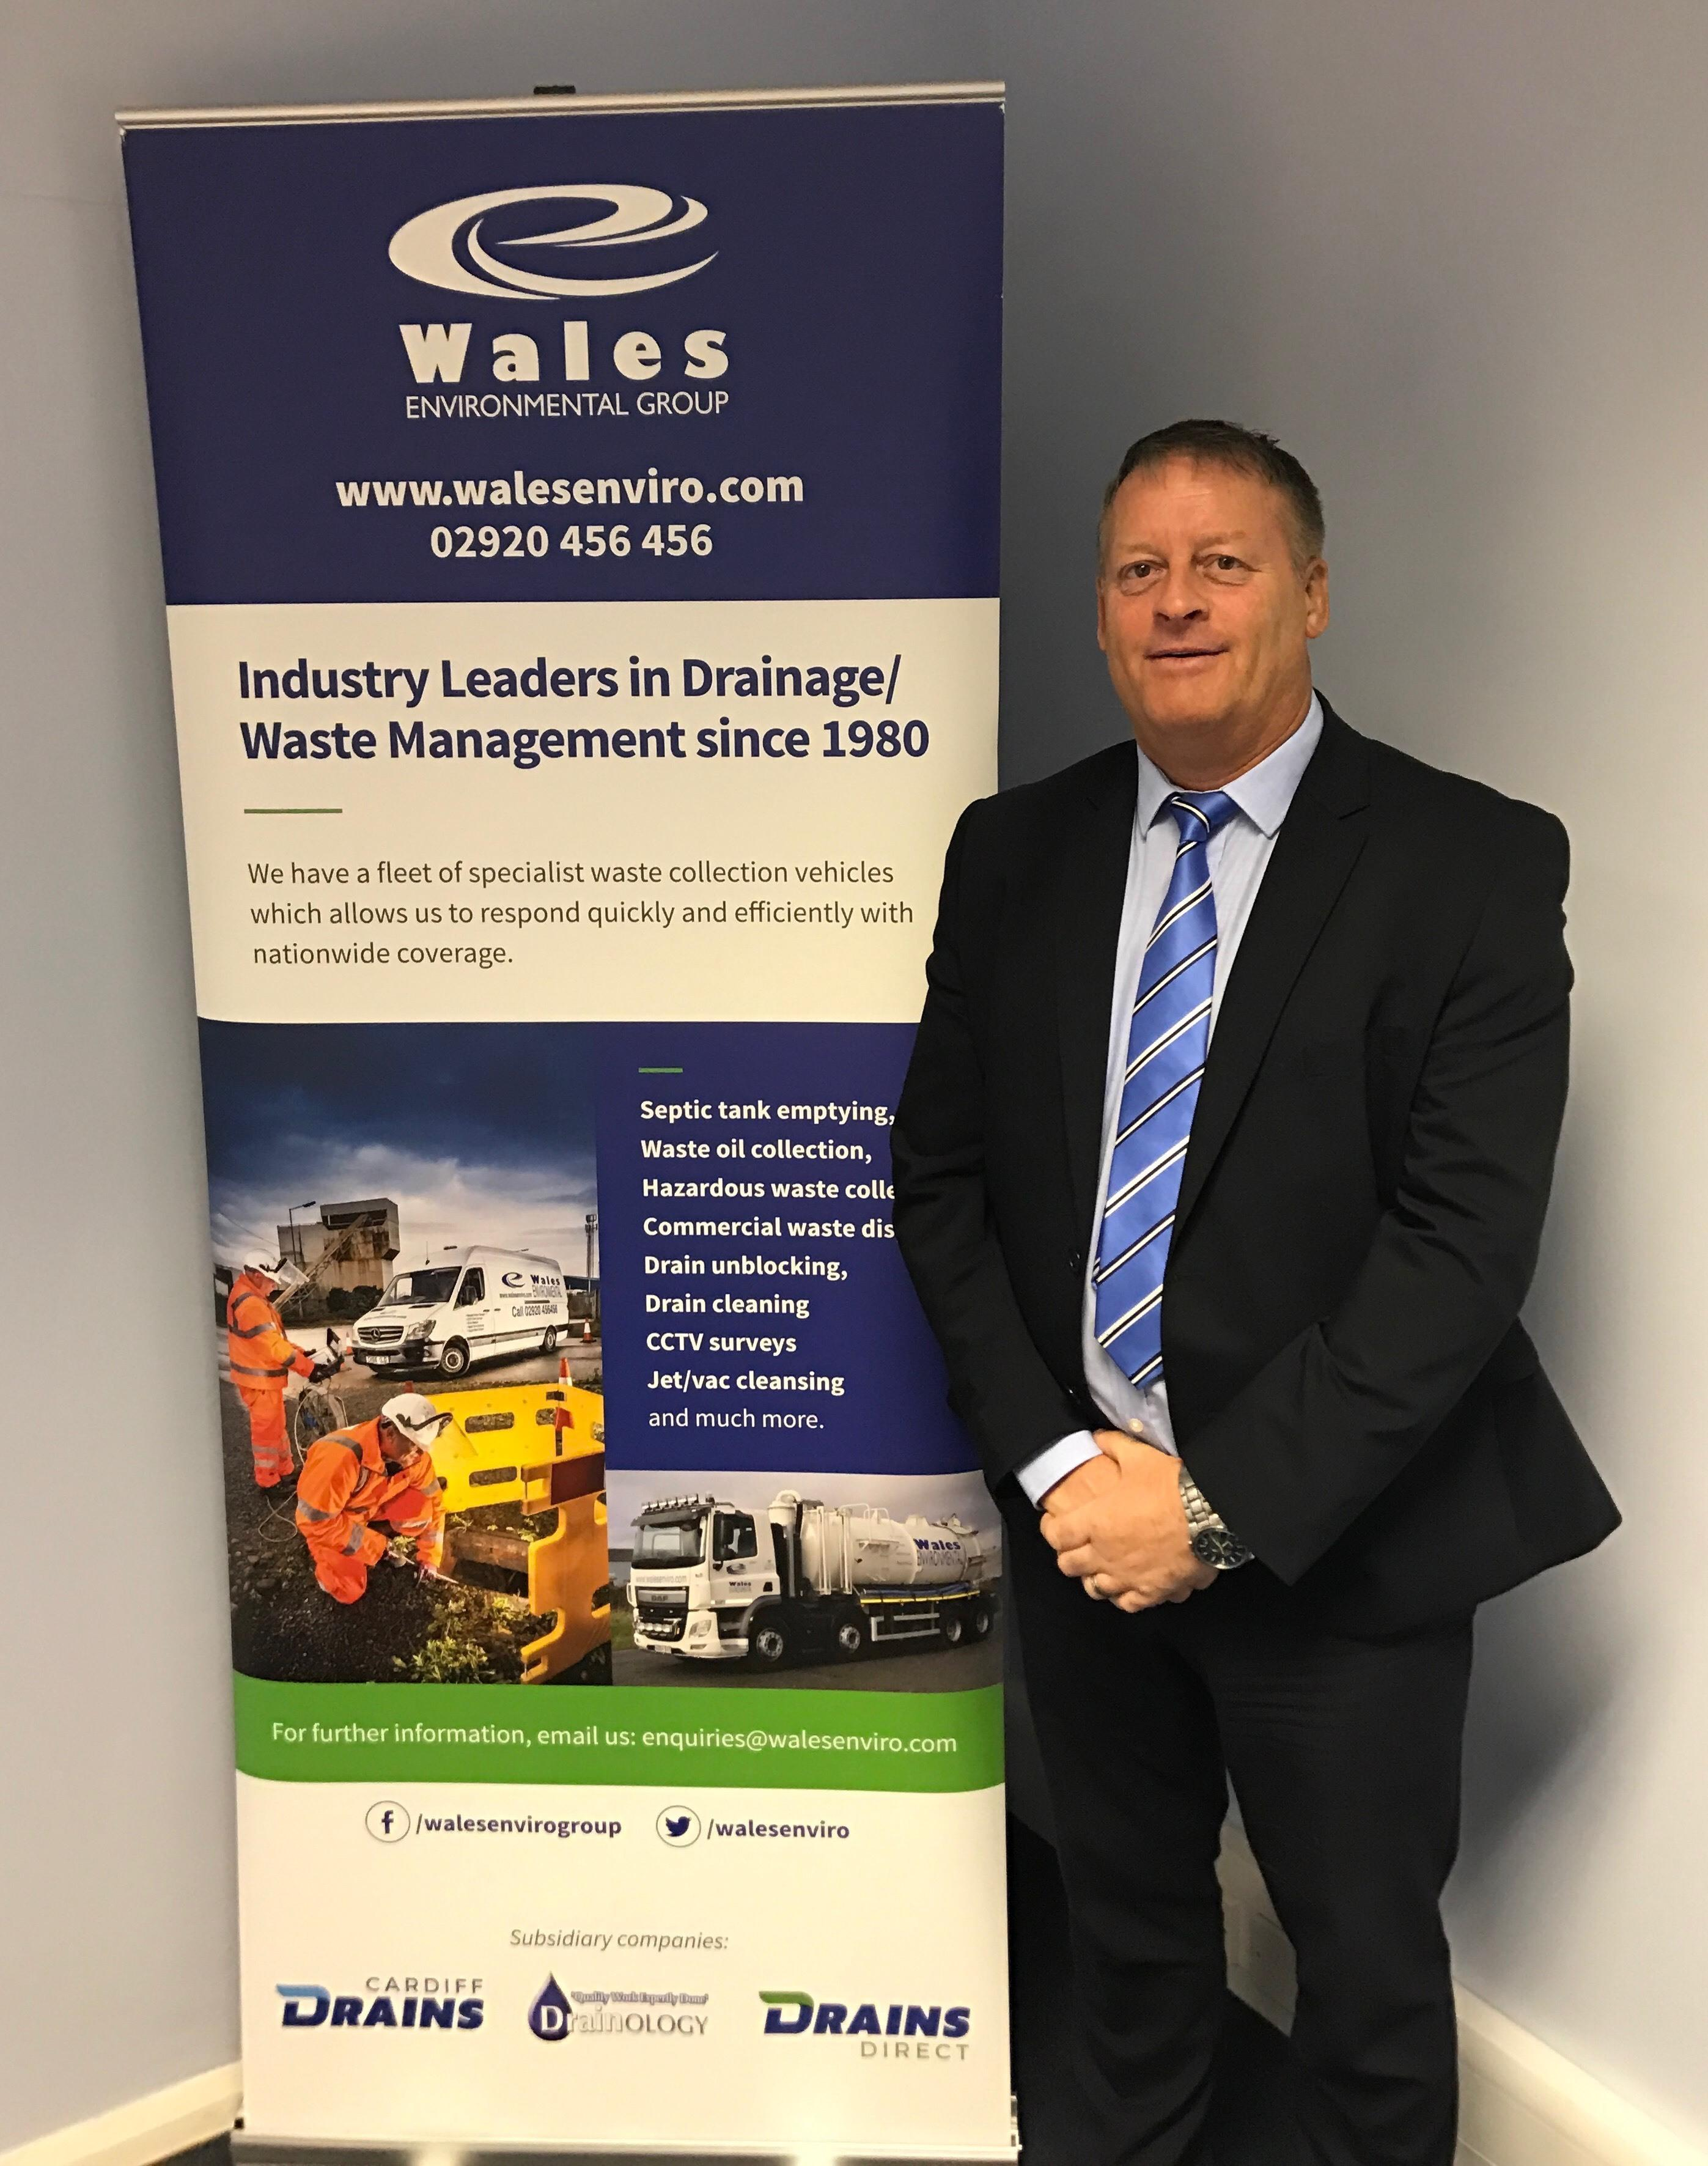 Wales Environmental Group appoints Dave Lewis to the Board of Directors